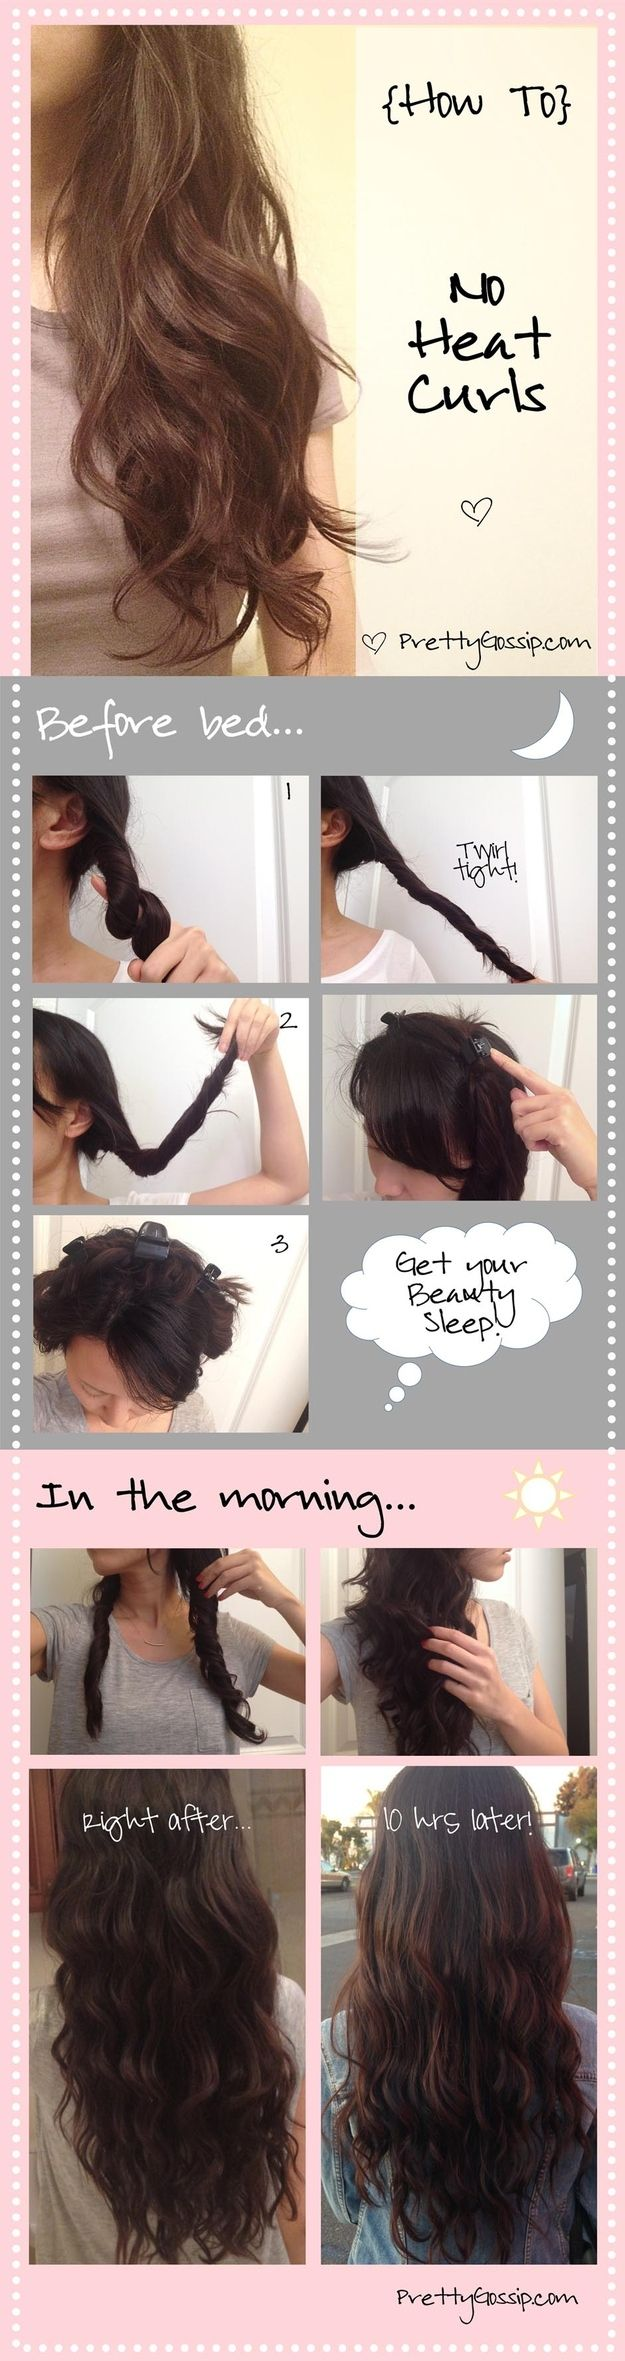 17 Incredible Hair Tricks  http://www.buzzfeed.com/verymuchso/17-ways-to-never-have-a-bad-hair-day-again